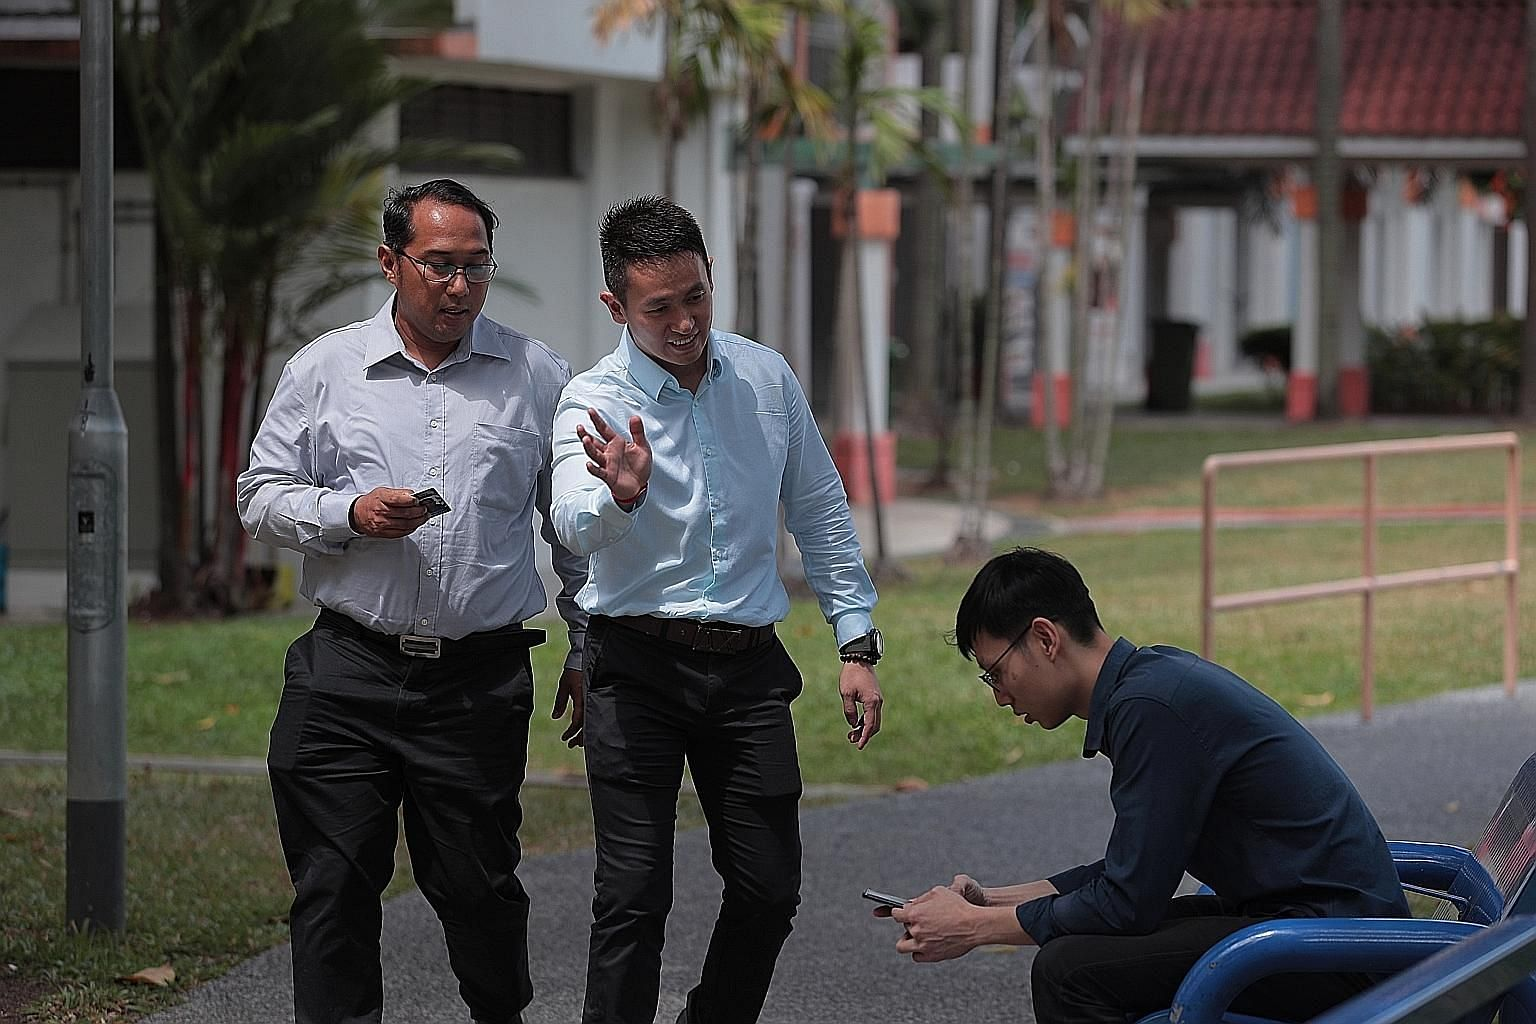 Senior Staff Sergeant Mohamad Shapie Saleh (left) and Sergeant Loh Seng Hong showing how they would conduct interviews in the field. Officers use their usual investigative methods to hunt down close contacts - analysing surveillance footage and speak